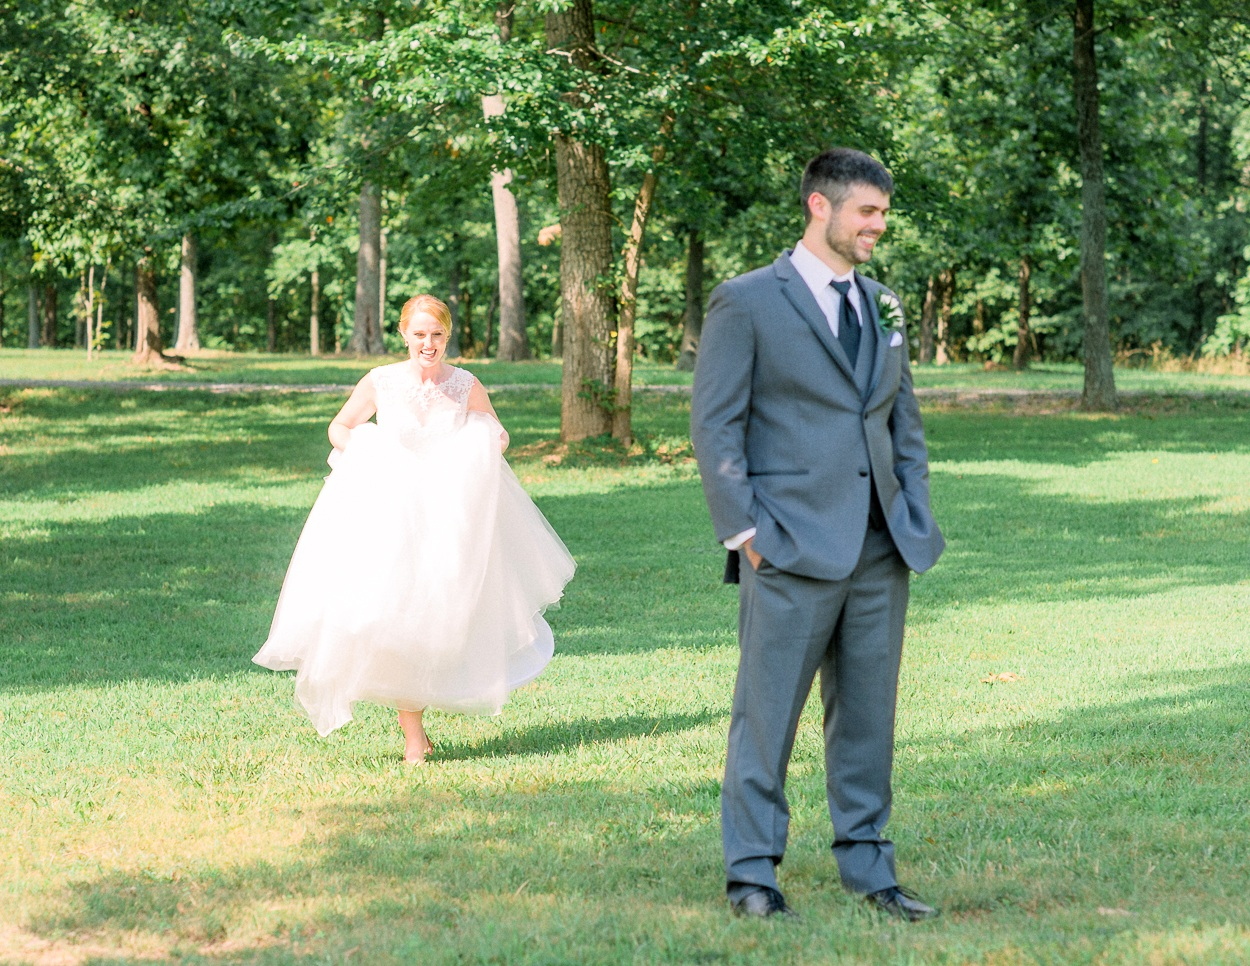 virginiawedding_vineyardwedding_LostCreekWinery_LeesburgWedding_youseephotography_Siegel (66).JPG